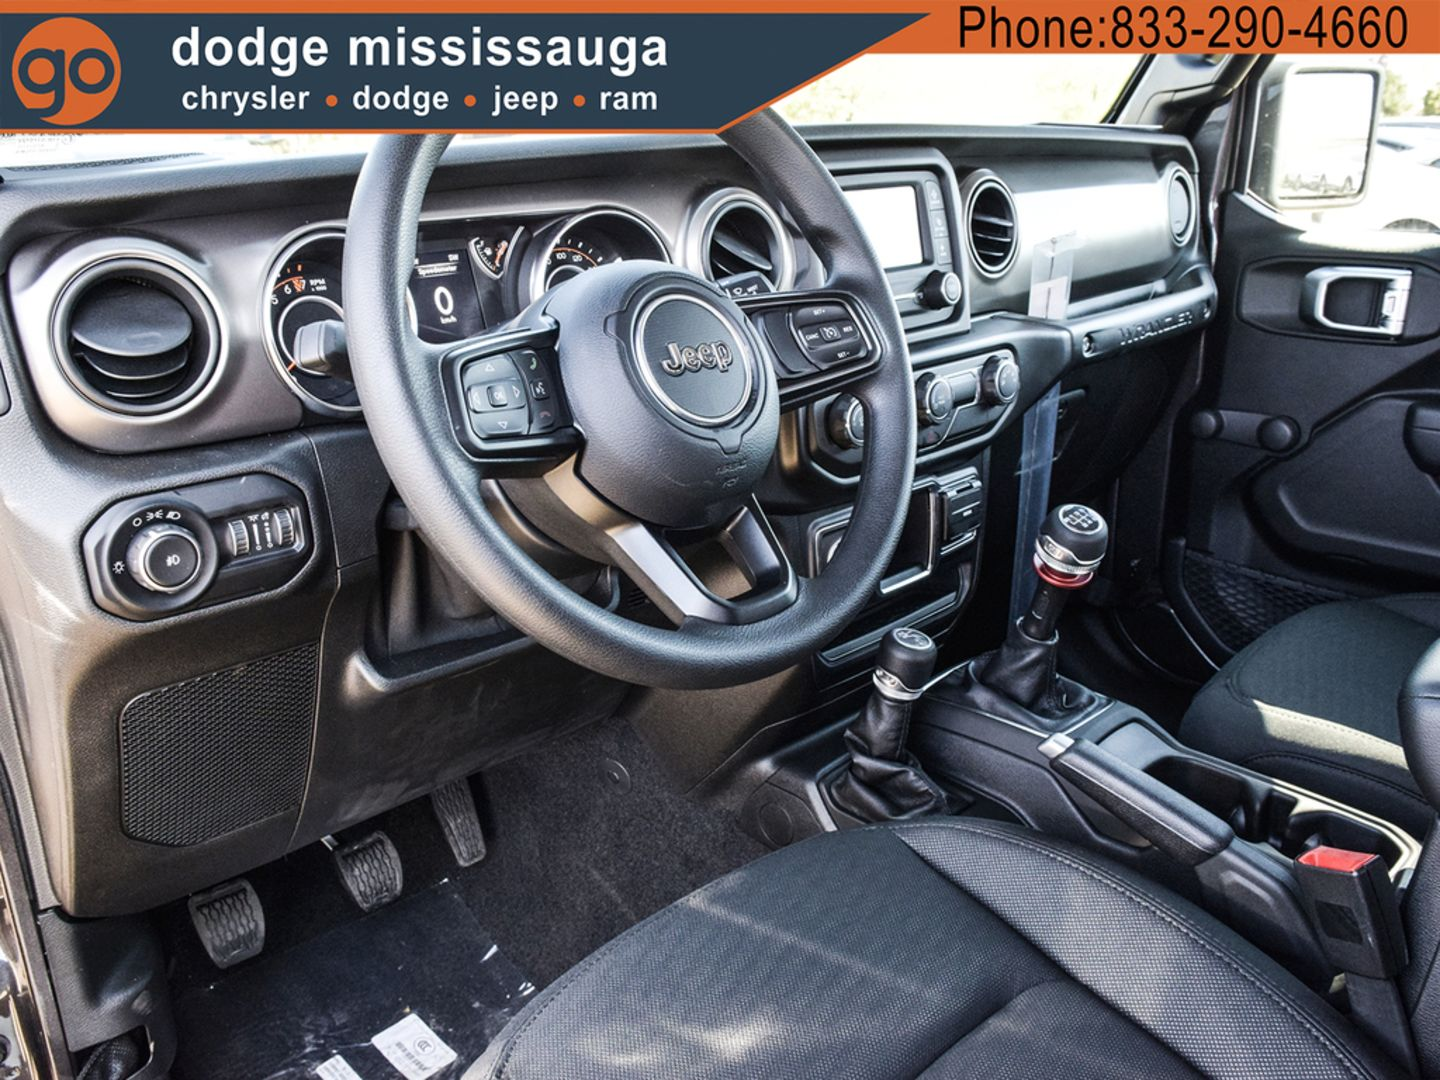 2020 Jeep Wrangler Sport for sale in Mississauga, Ontario